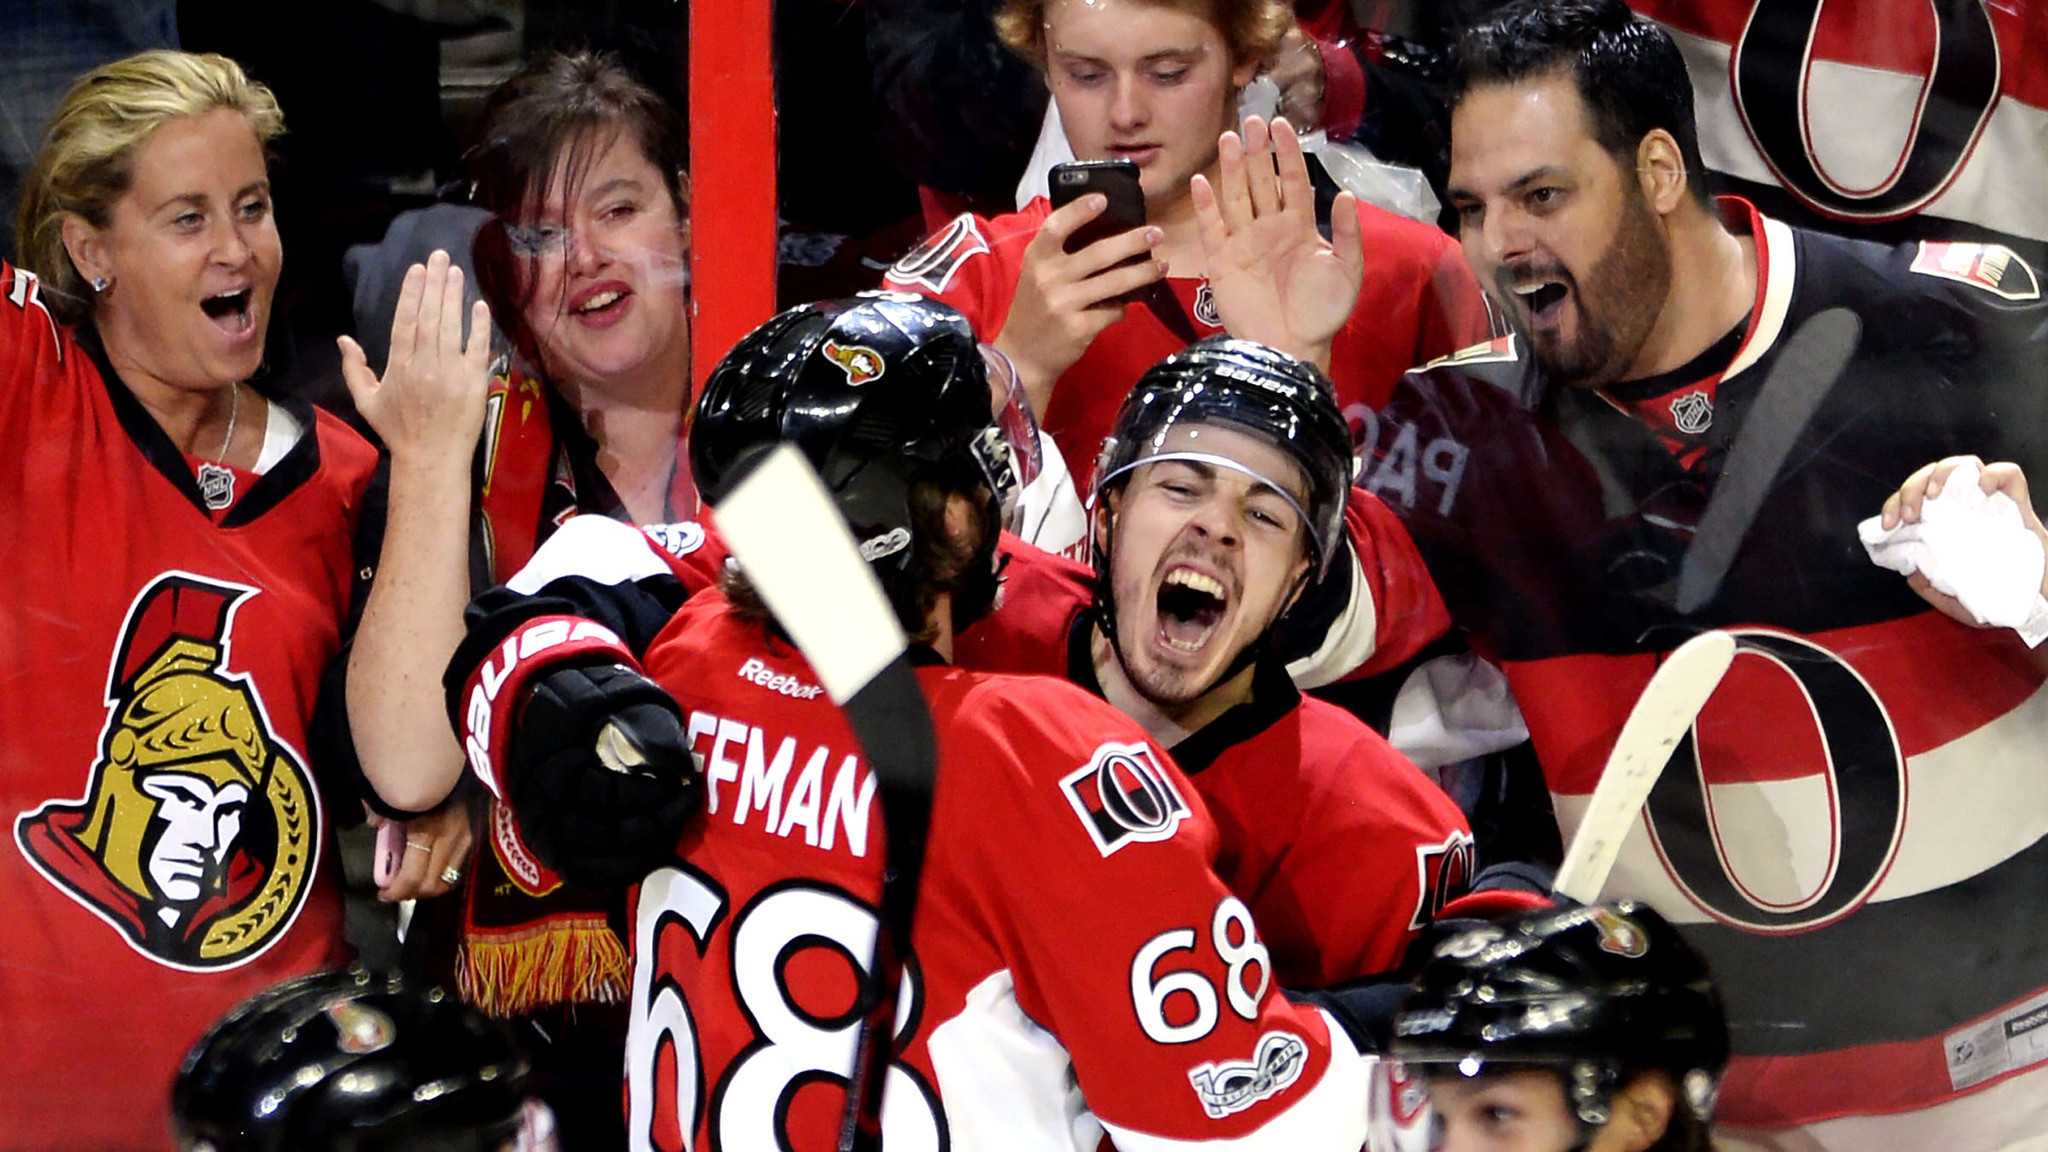 NHL playoffs: Senators, Penguins take 2-0 leads in Eastern Conference semifinals